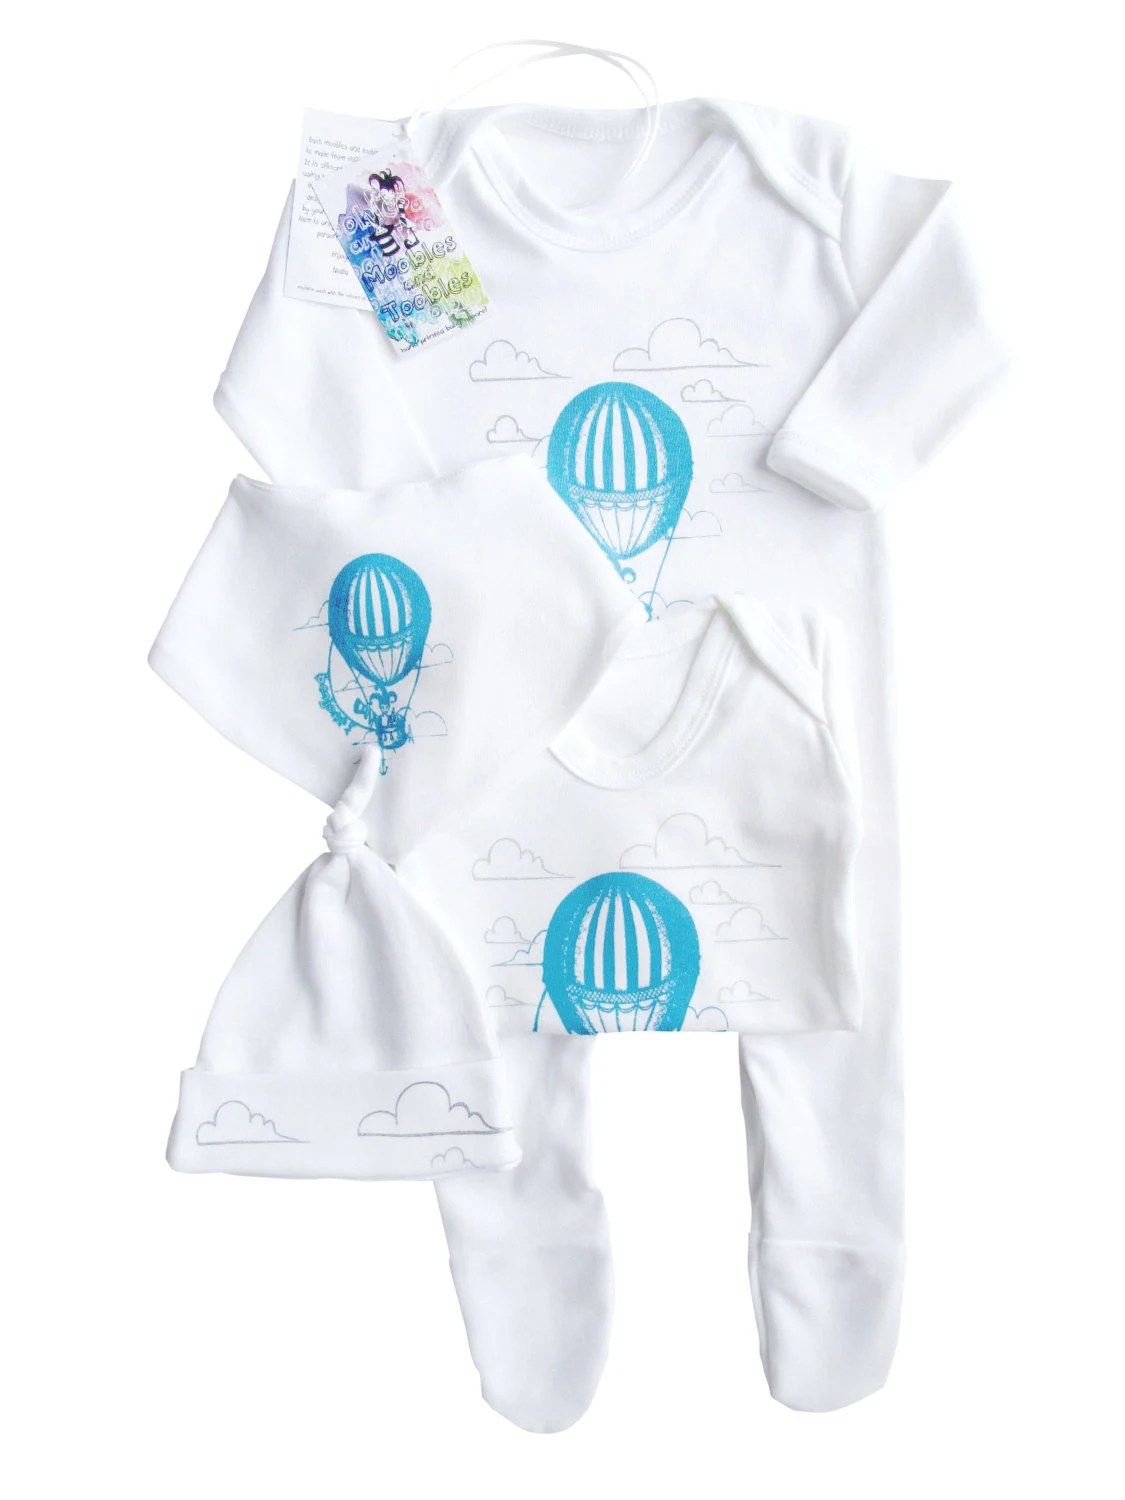 Beautiful hand printed baby four piece gift set